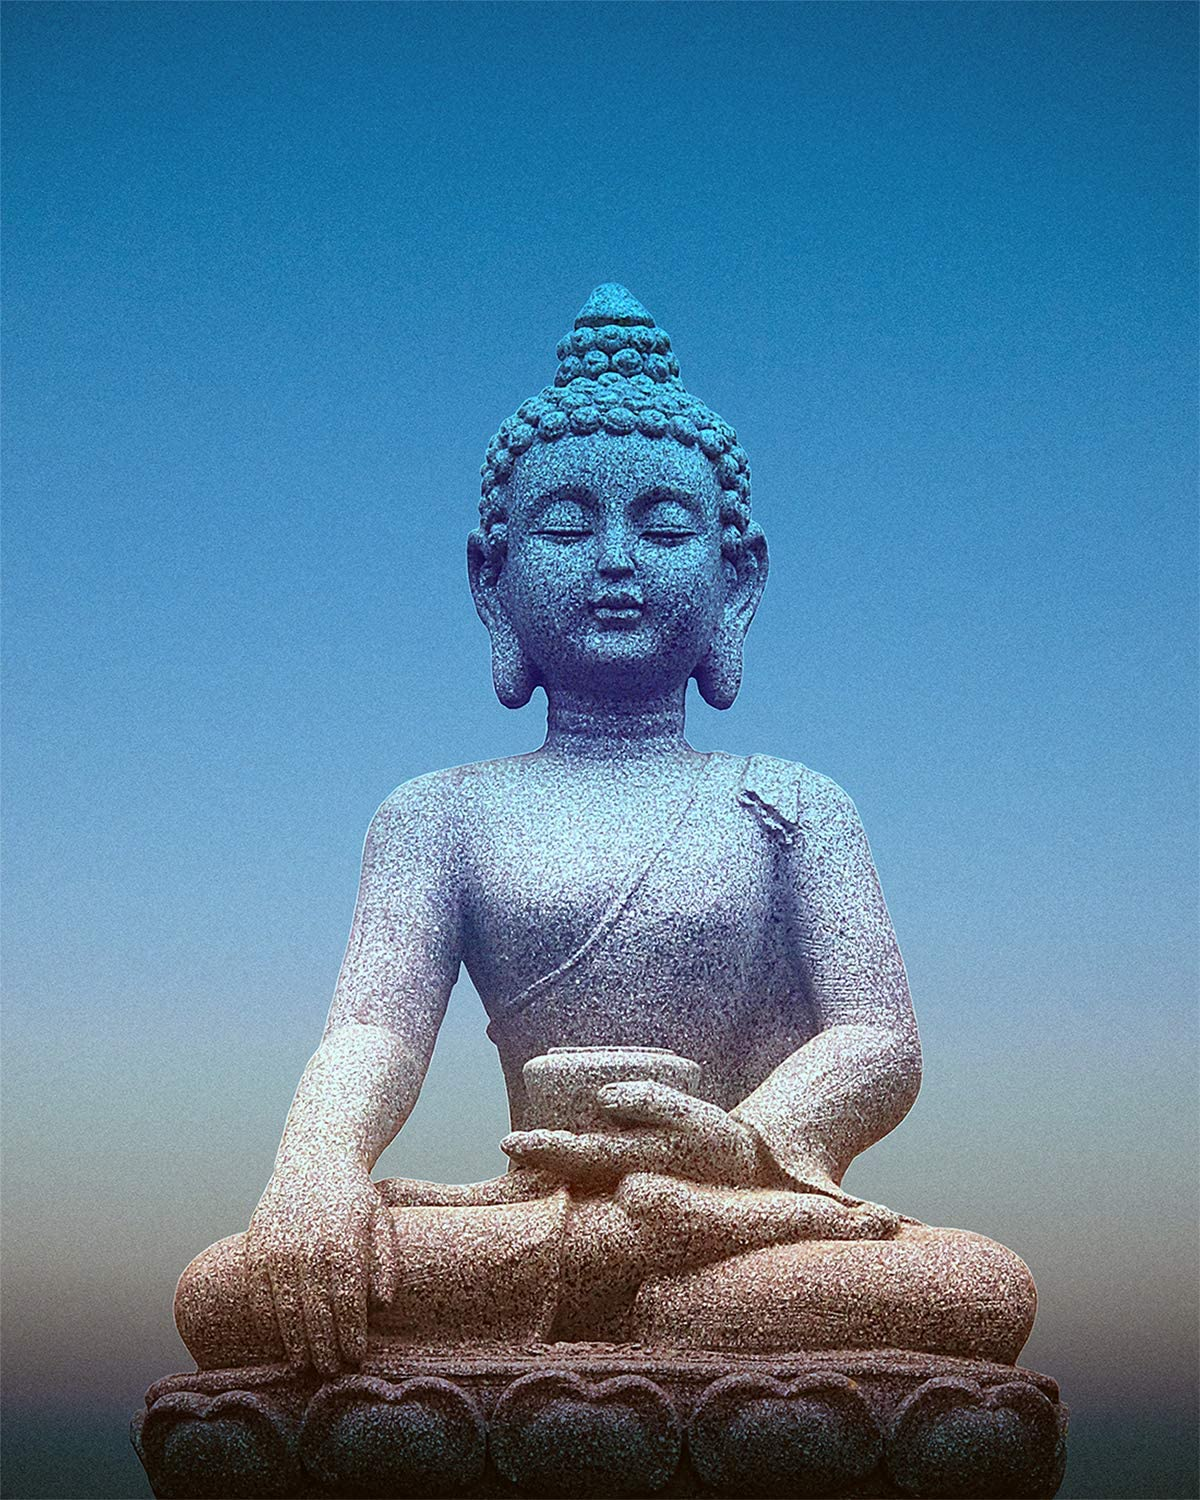 A Stone Buddha - Wall Decor Art Print on a gradient blue background - 8x10 unframed meditation-themed print - great gift for relatives and friends